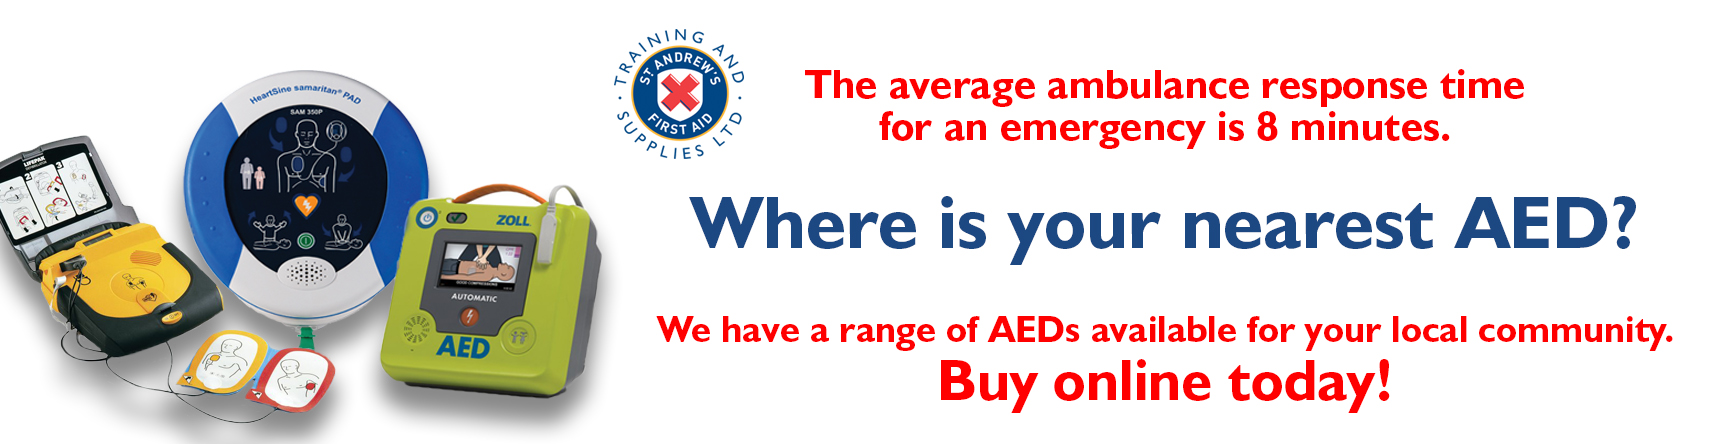 AED in your community